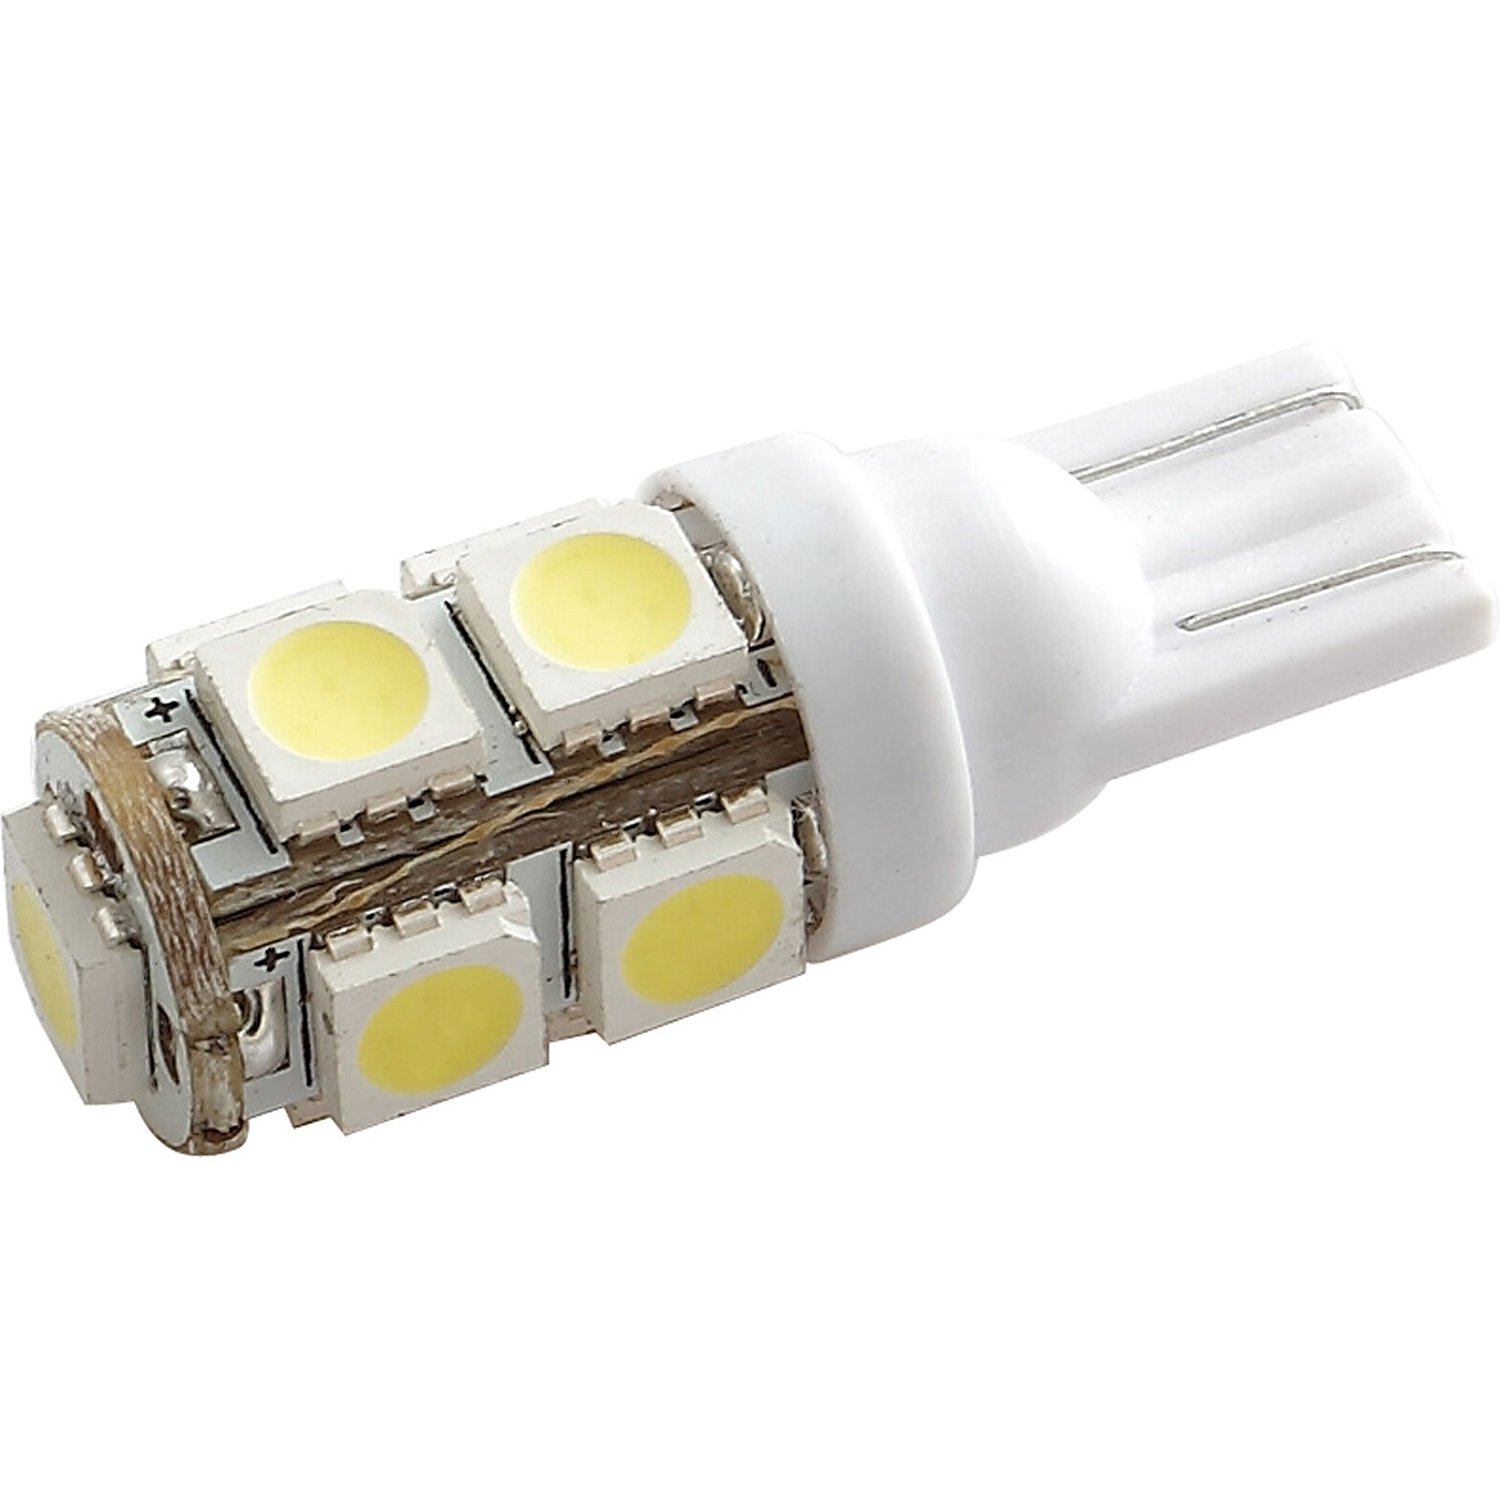 Wedge Base Tower Led Multi Purpose Light Bulb- Led